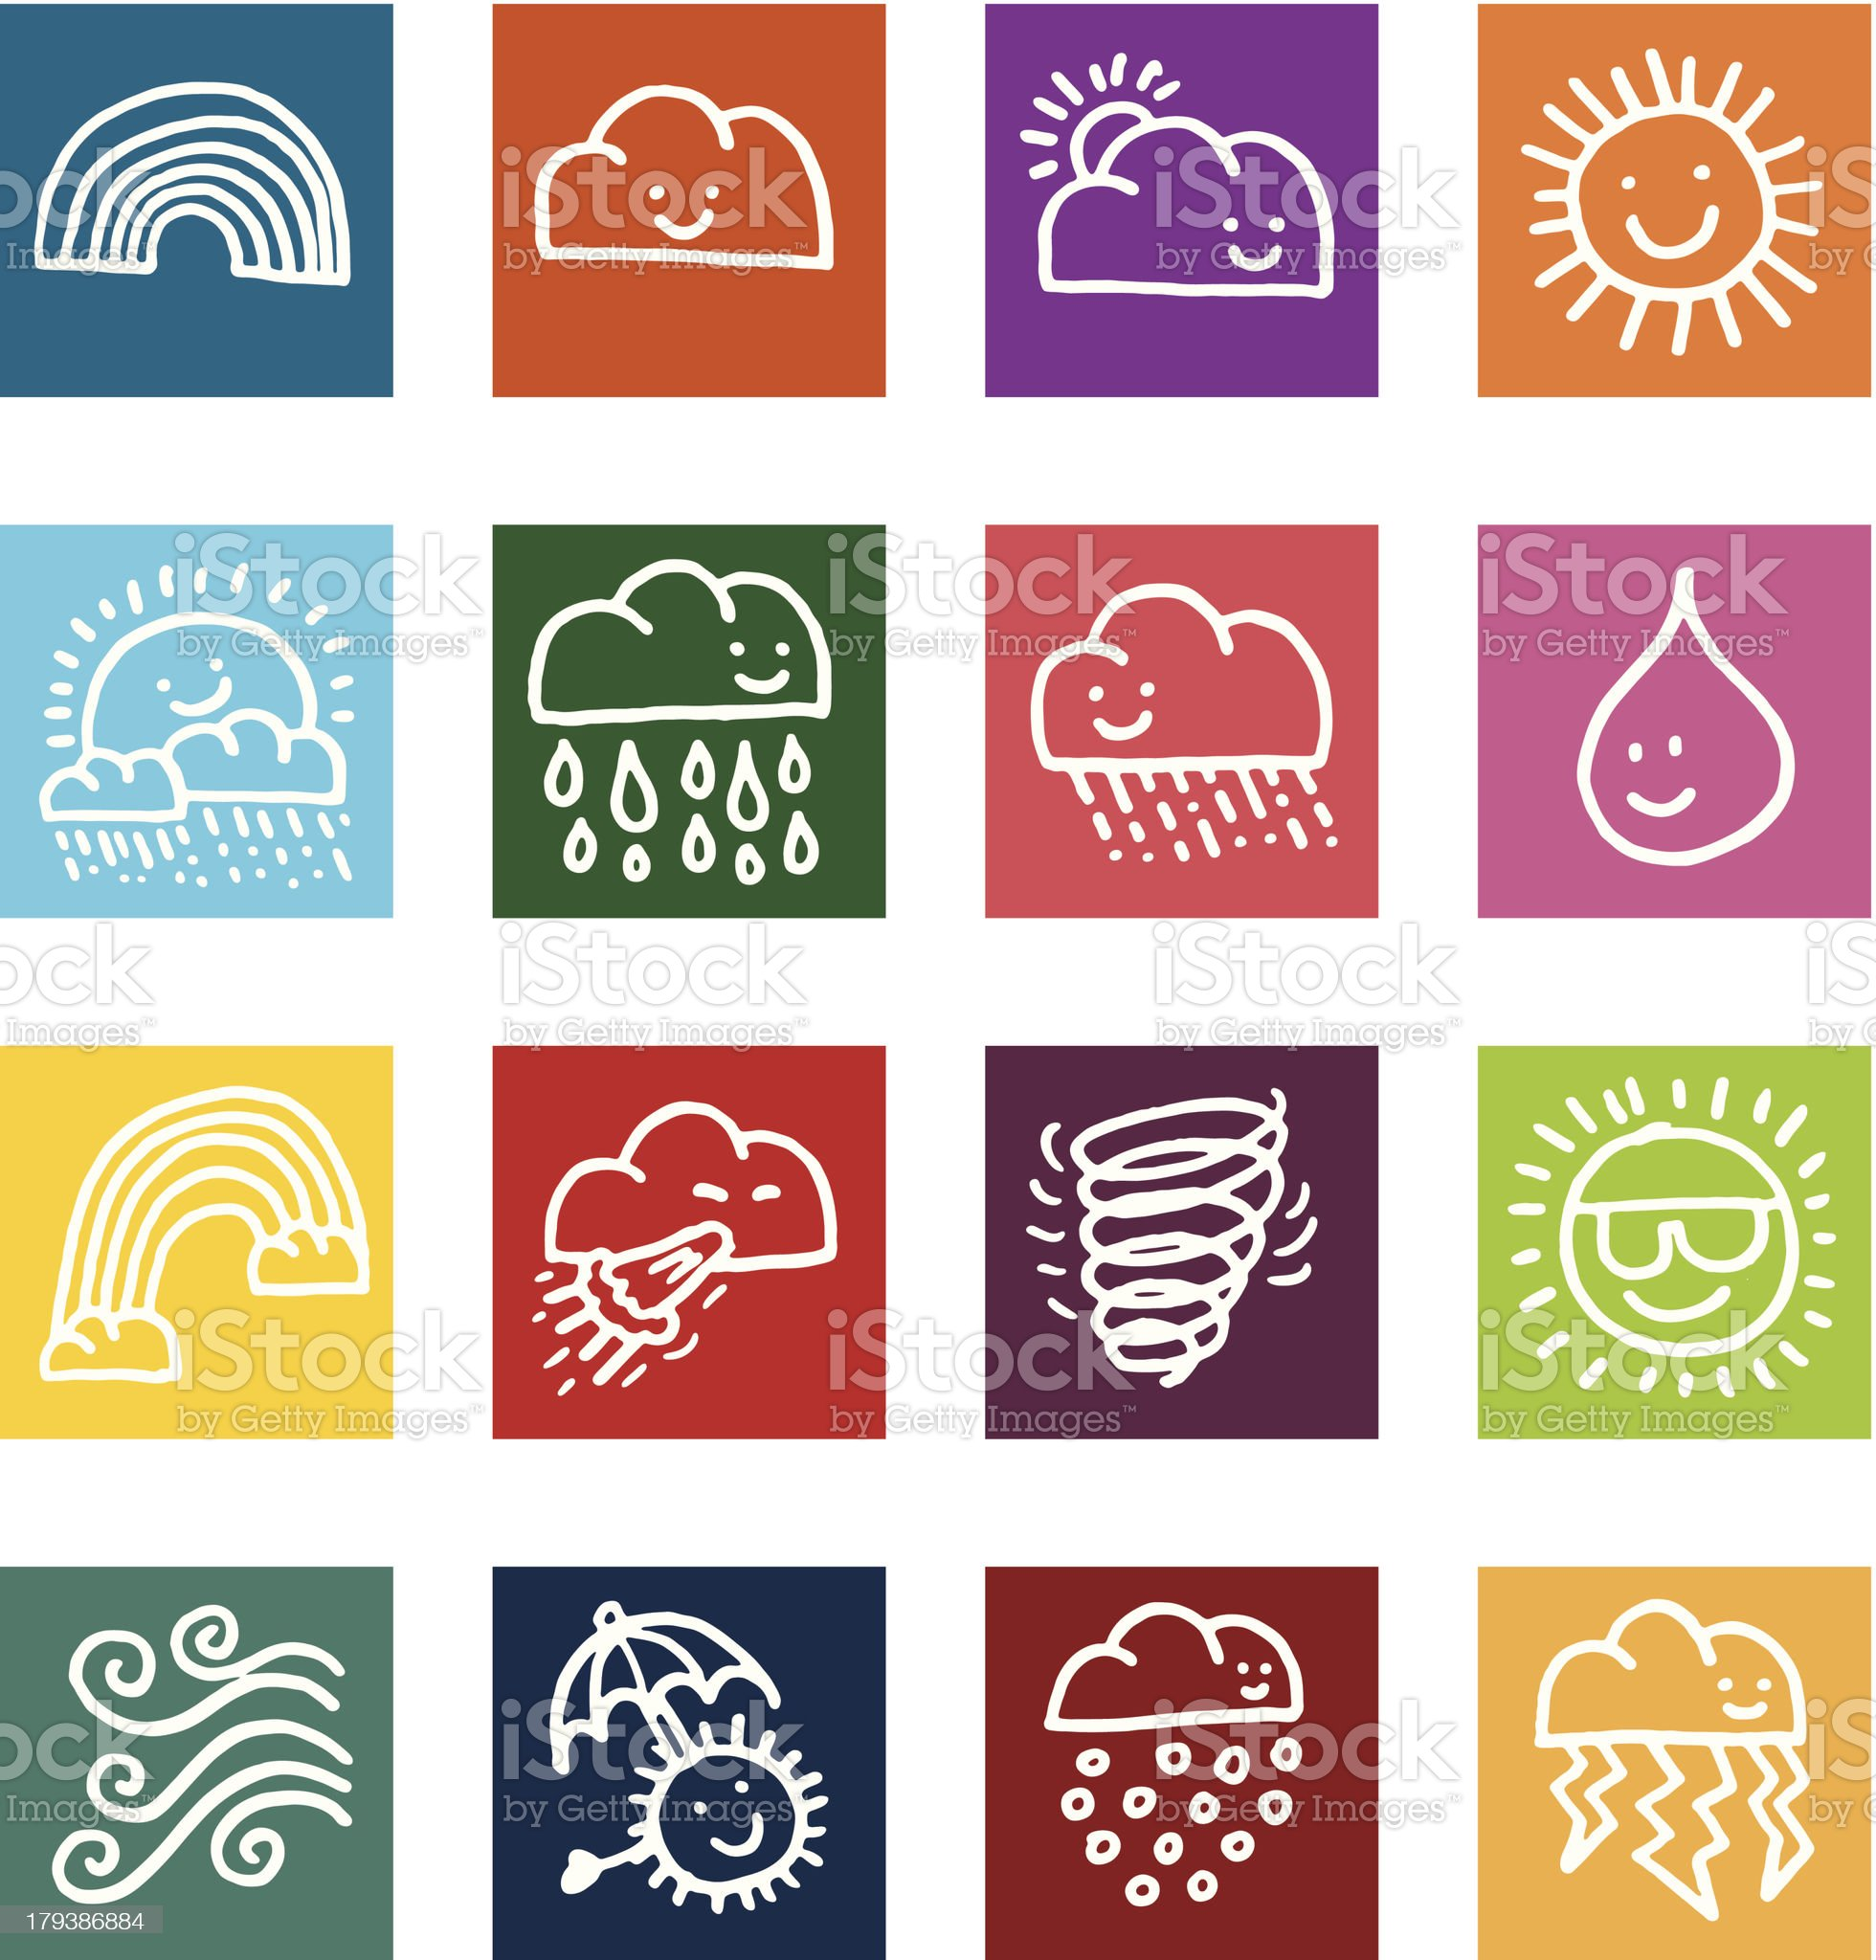 Weather flat icon set royalty-free stock vector art